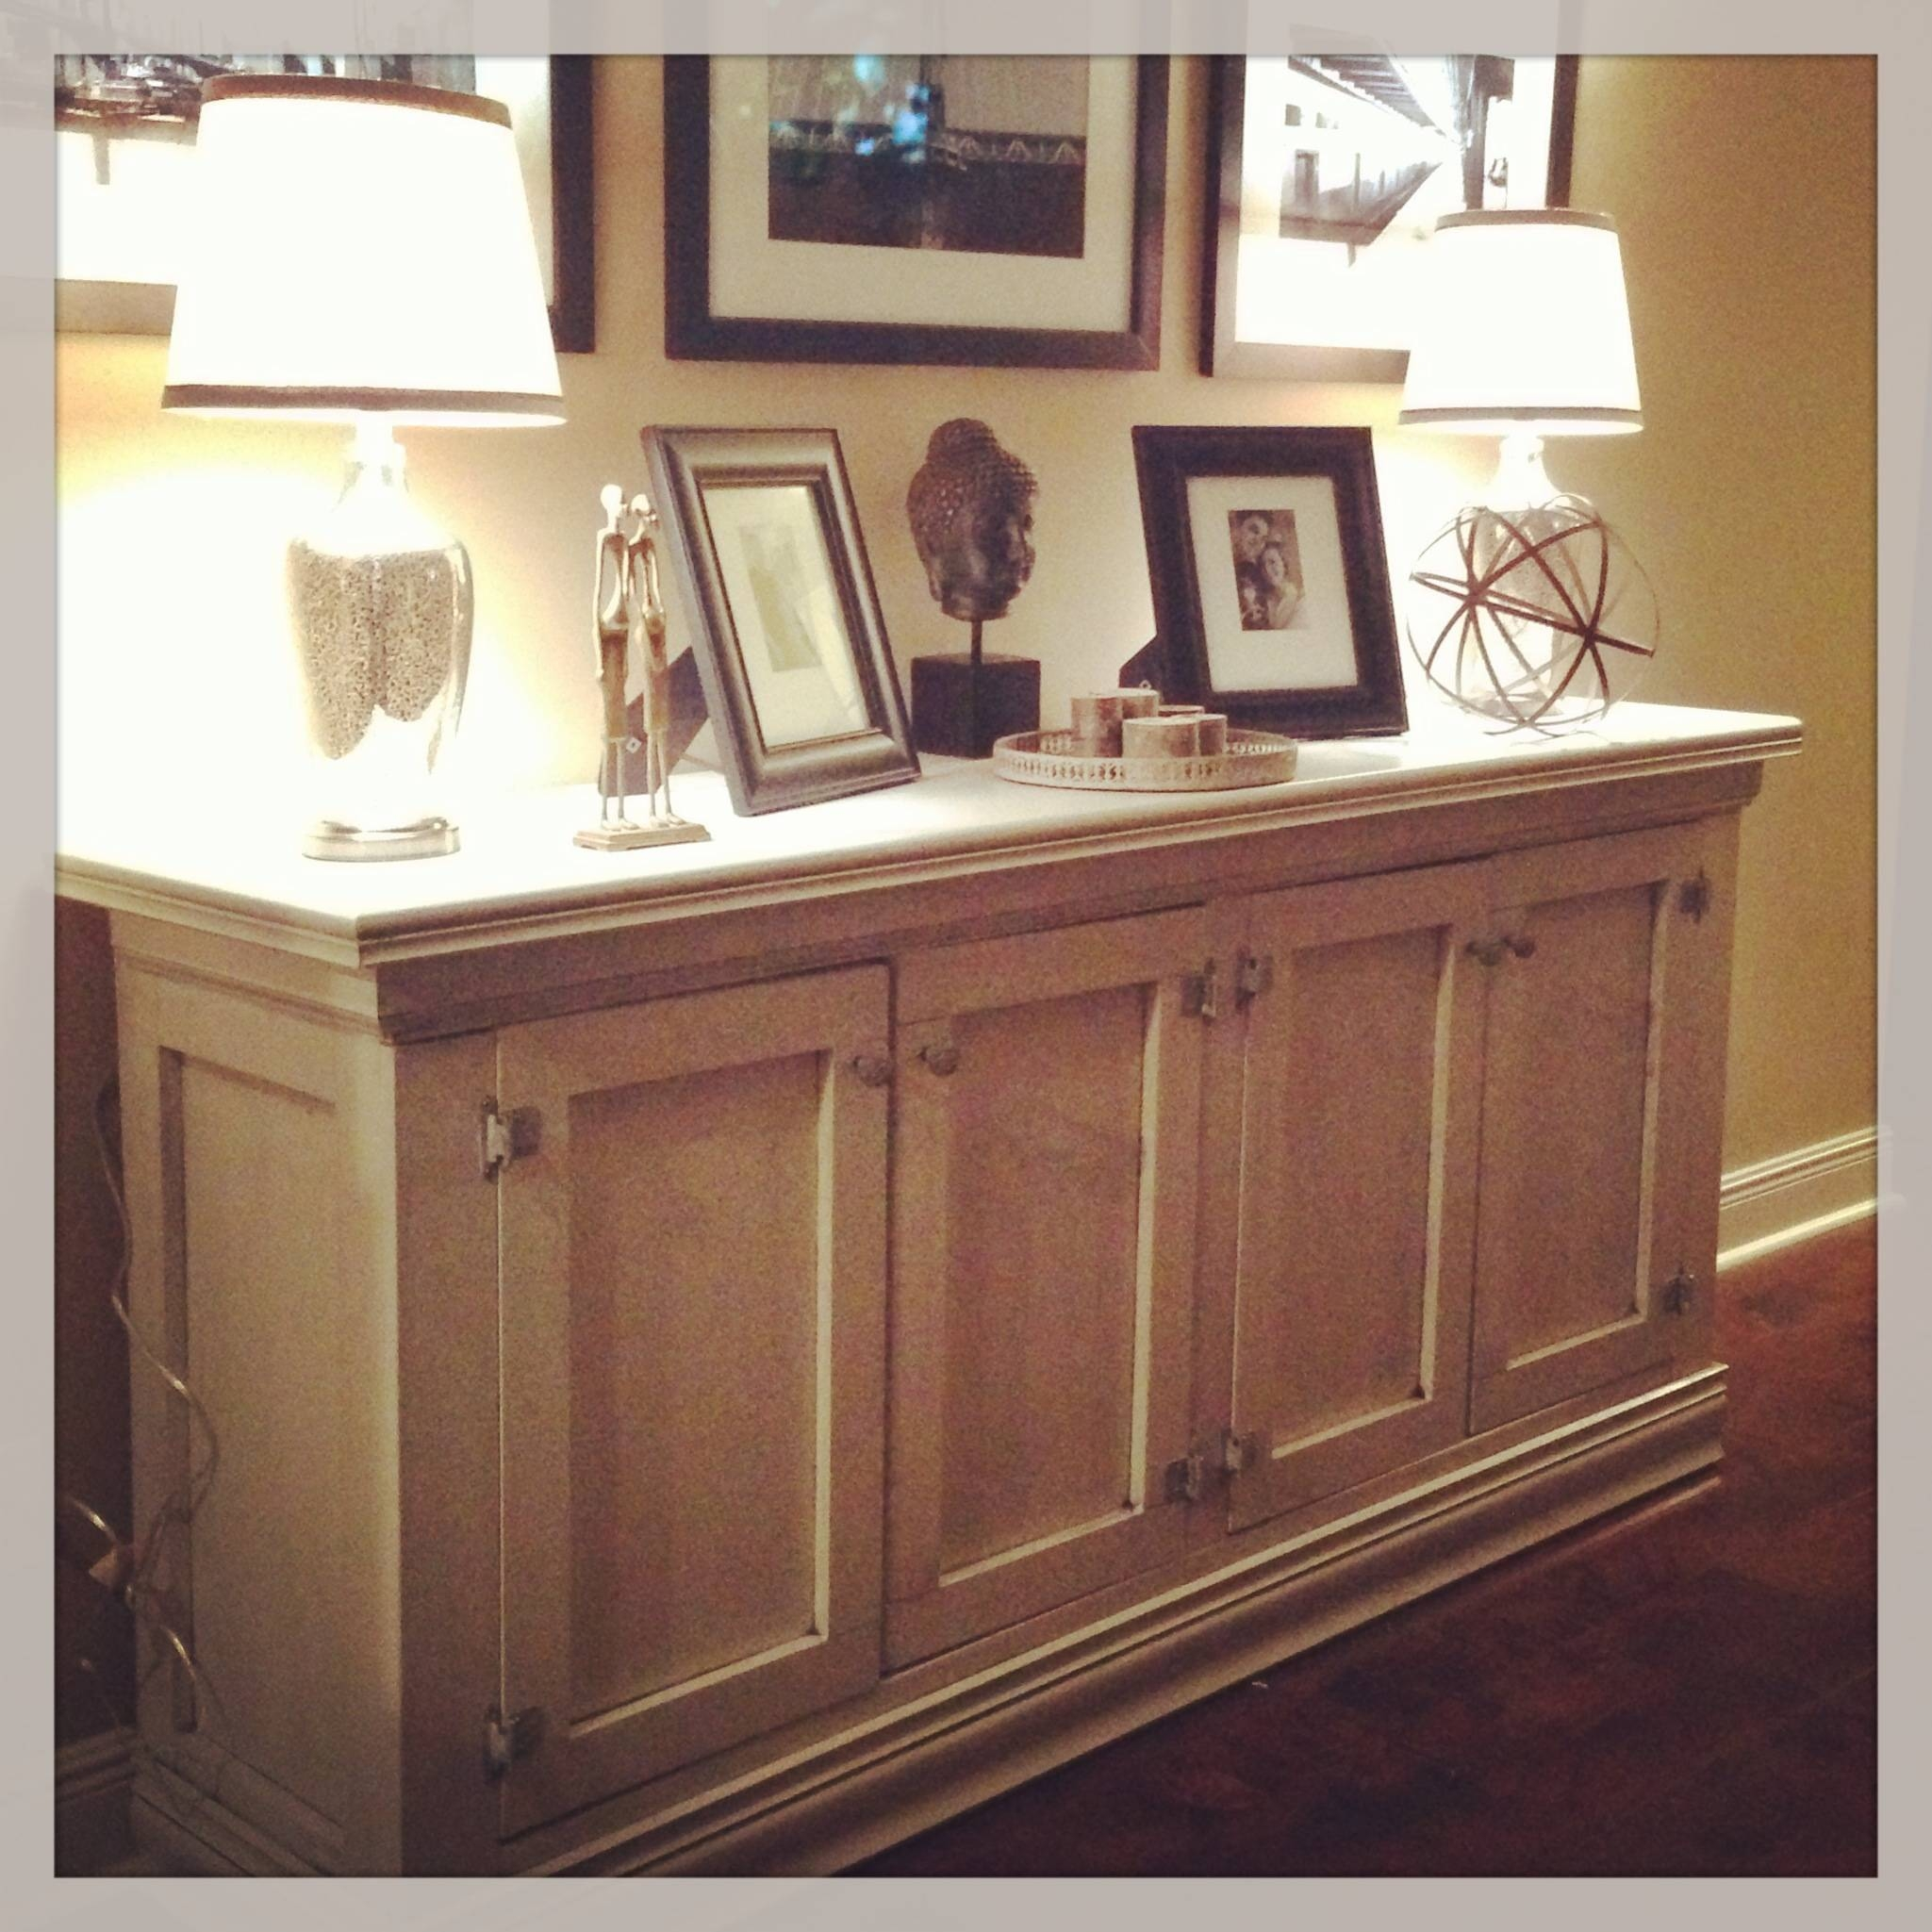 Buffet Or Sideboard Best Of And Diy Sideboard The Sweet Life pertaining to Buffet Server Sideboards (Image 2 of 15)